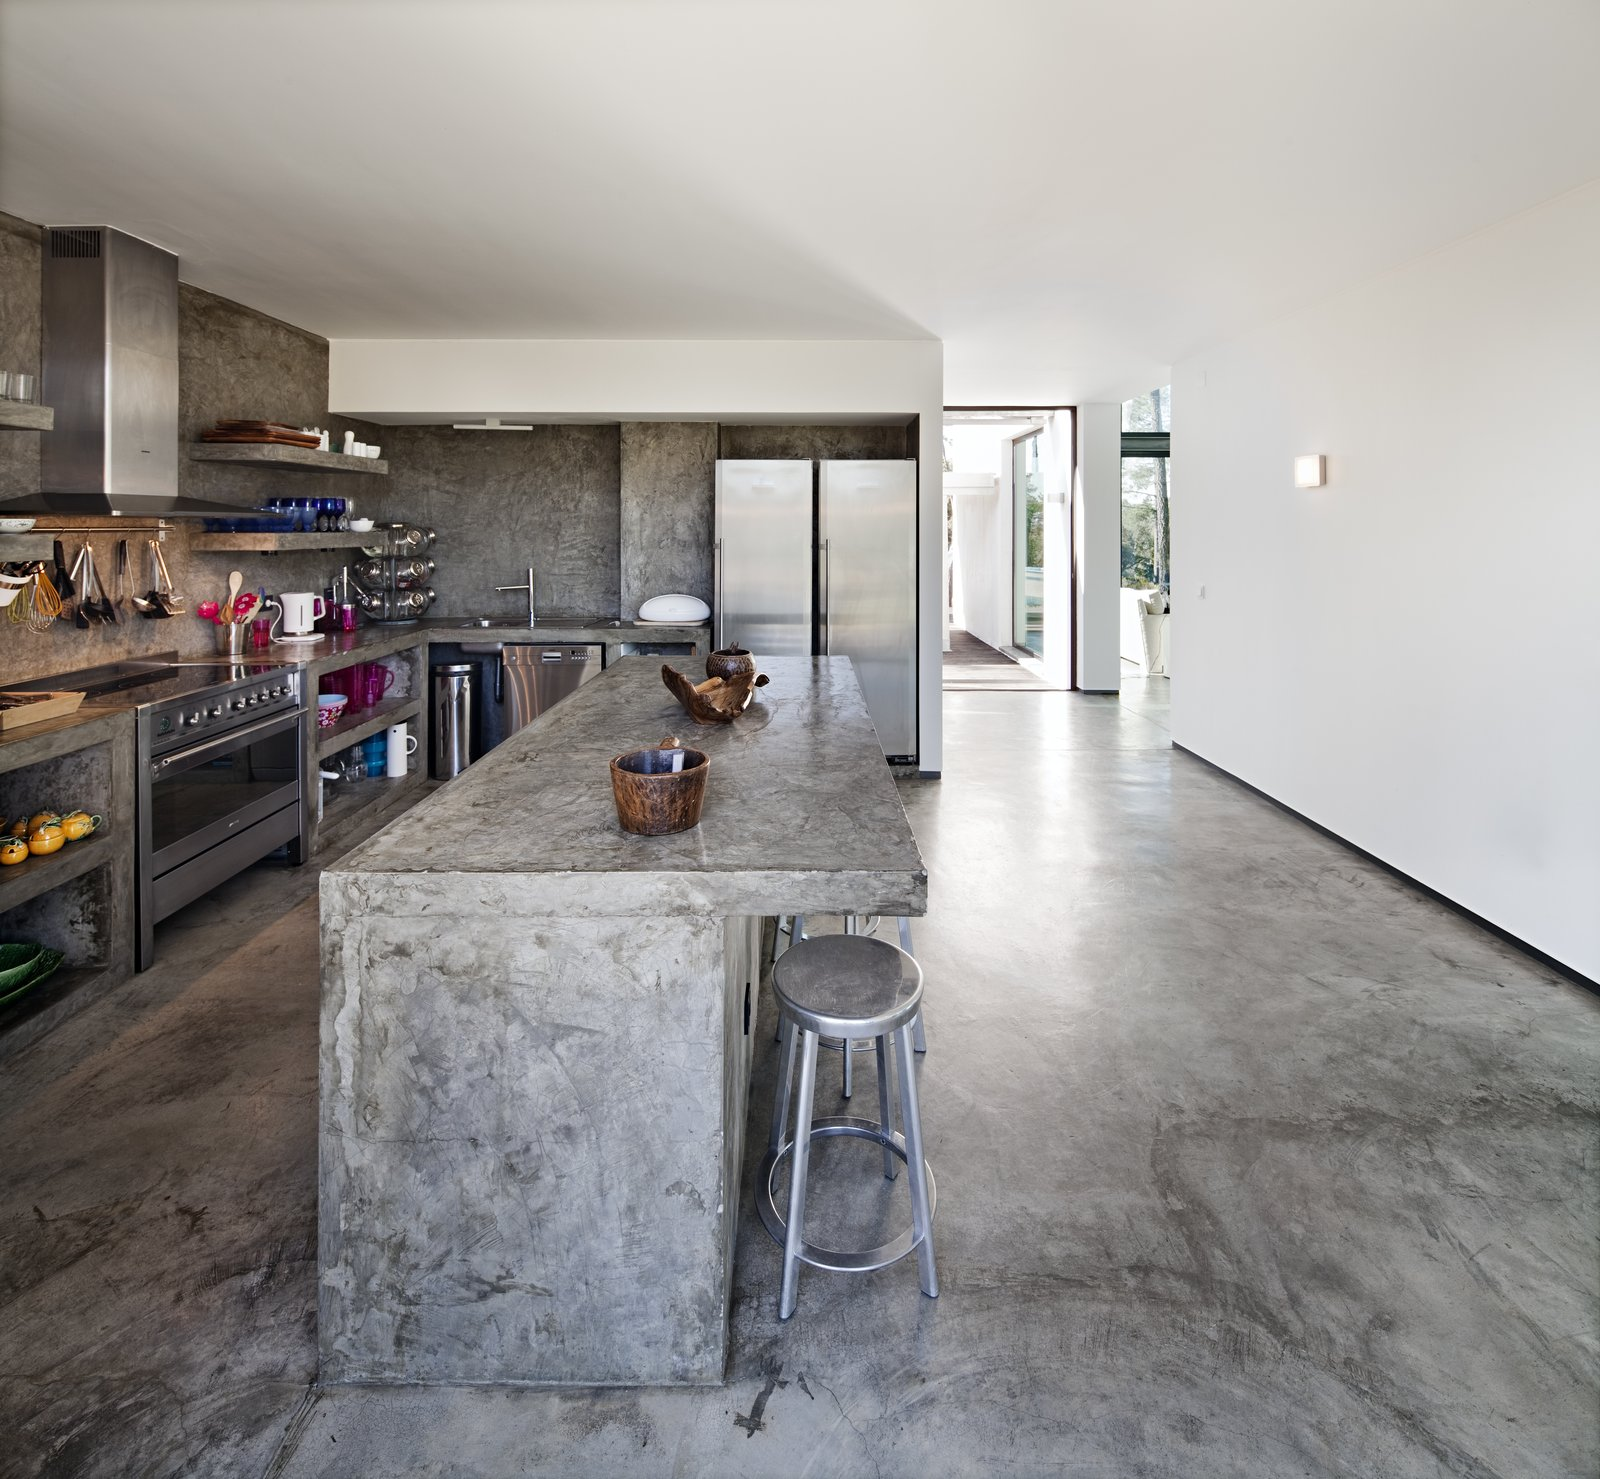 Kitchen, Concrete, Dishwasher, Range Hood, Wall Oven, Refrigerator, Drop In, Concrete, Open, Wall, Cooktops, Ceiling, and Concrete  Best Kitchen Ceiling Concrete Concrete Dishwasher Drop In Photos from Escape to a Light-Filled, Beach-Meets-Forest Retreat in Portugal